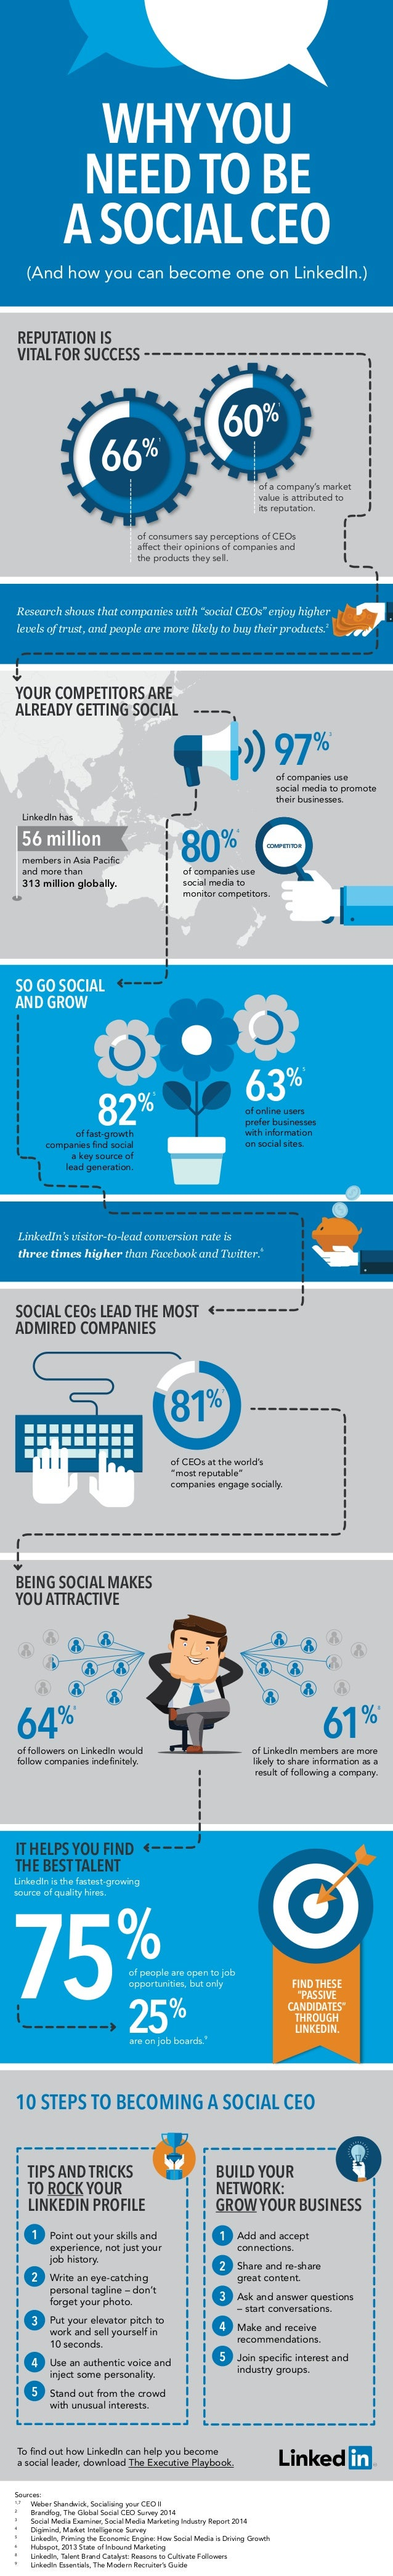 WHY YOU  NEED TO BE  A SOCIAL CEO  (And how you can become one on LinkedIn.)  REPUTATION IS  VITAL FOR SUCCESS  60%  66%  ...